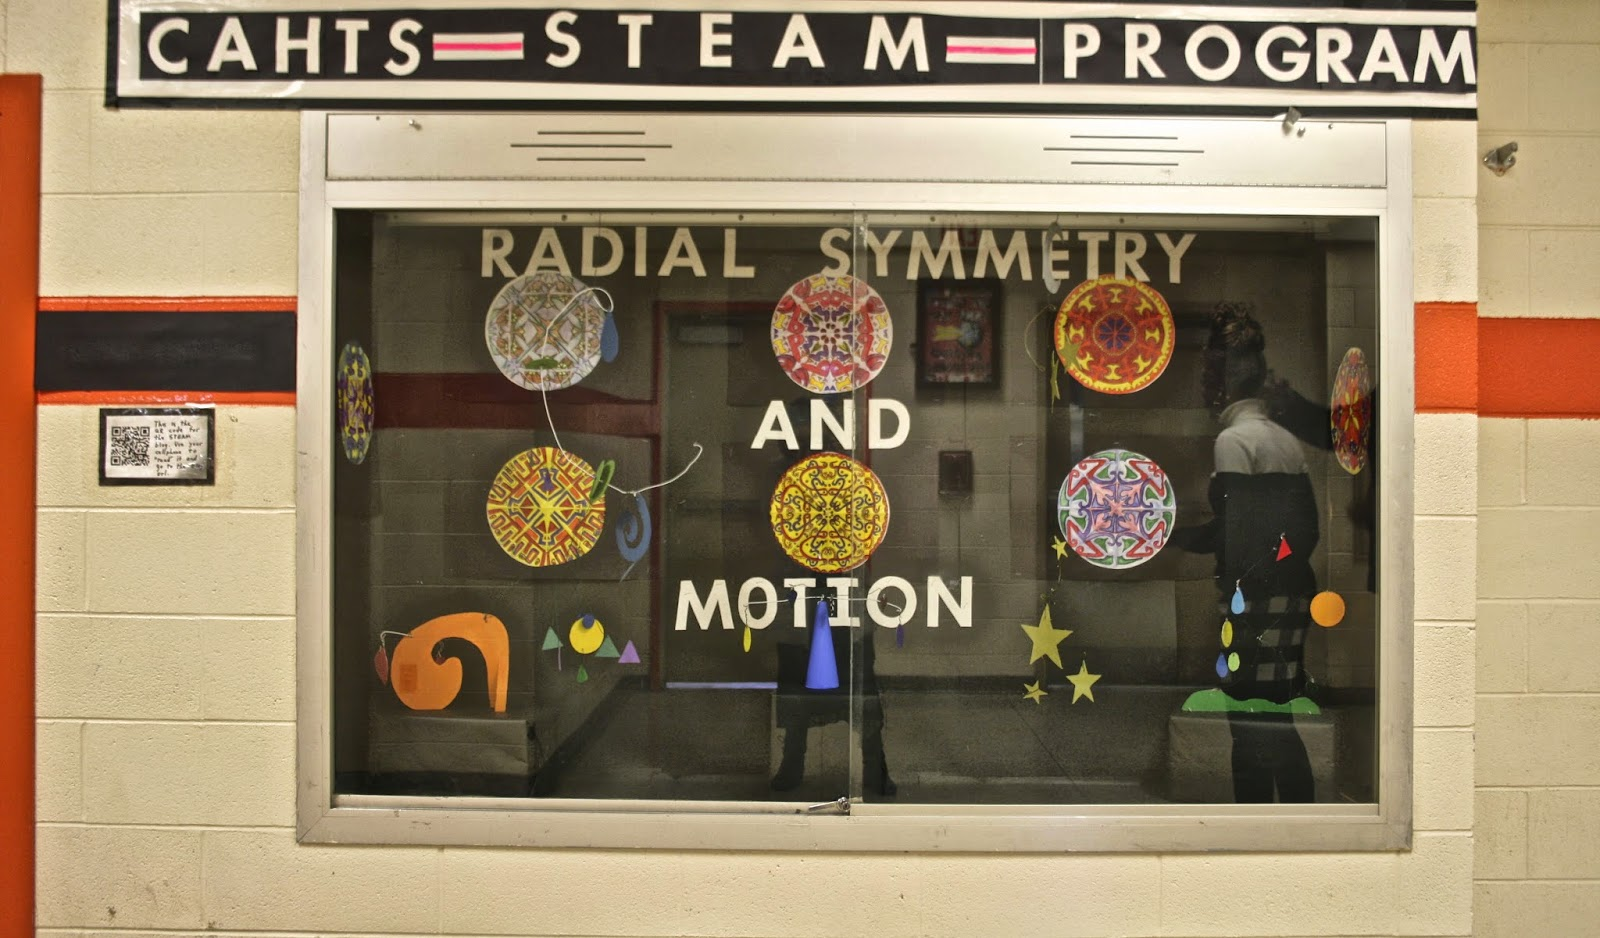 STEAM EmPOWERment: Radial Symmetry and Motion at CAHTS